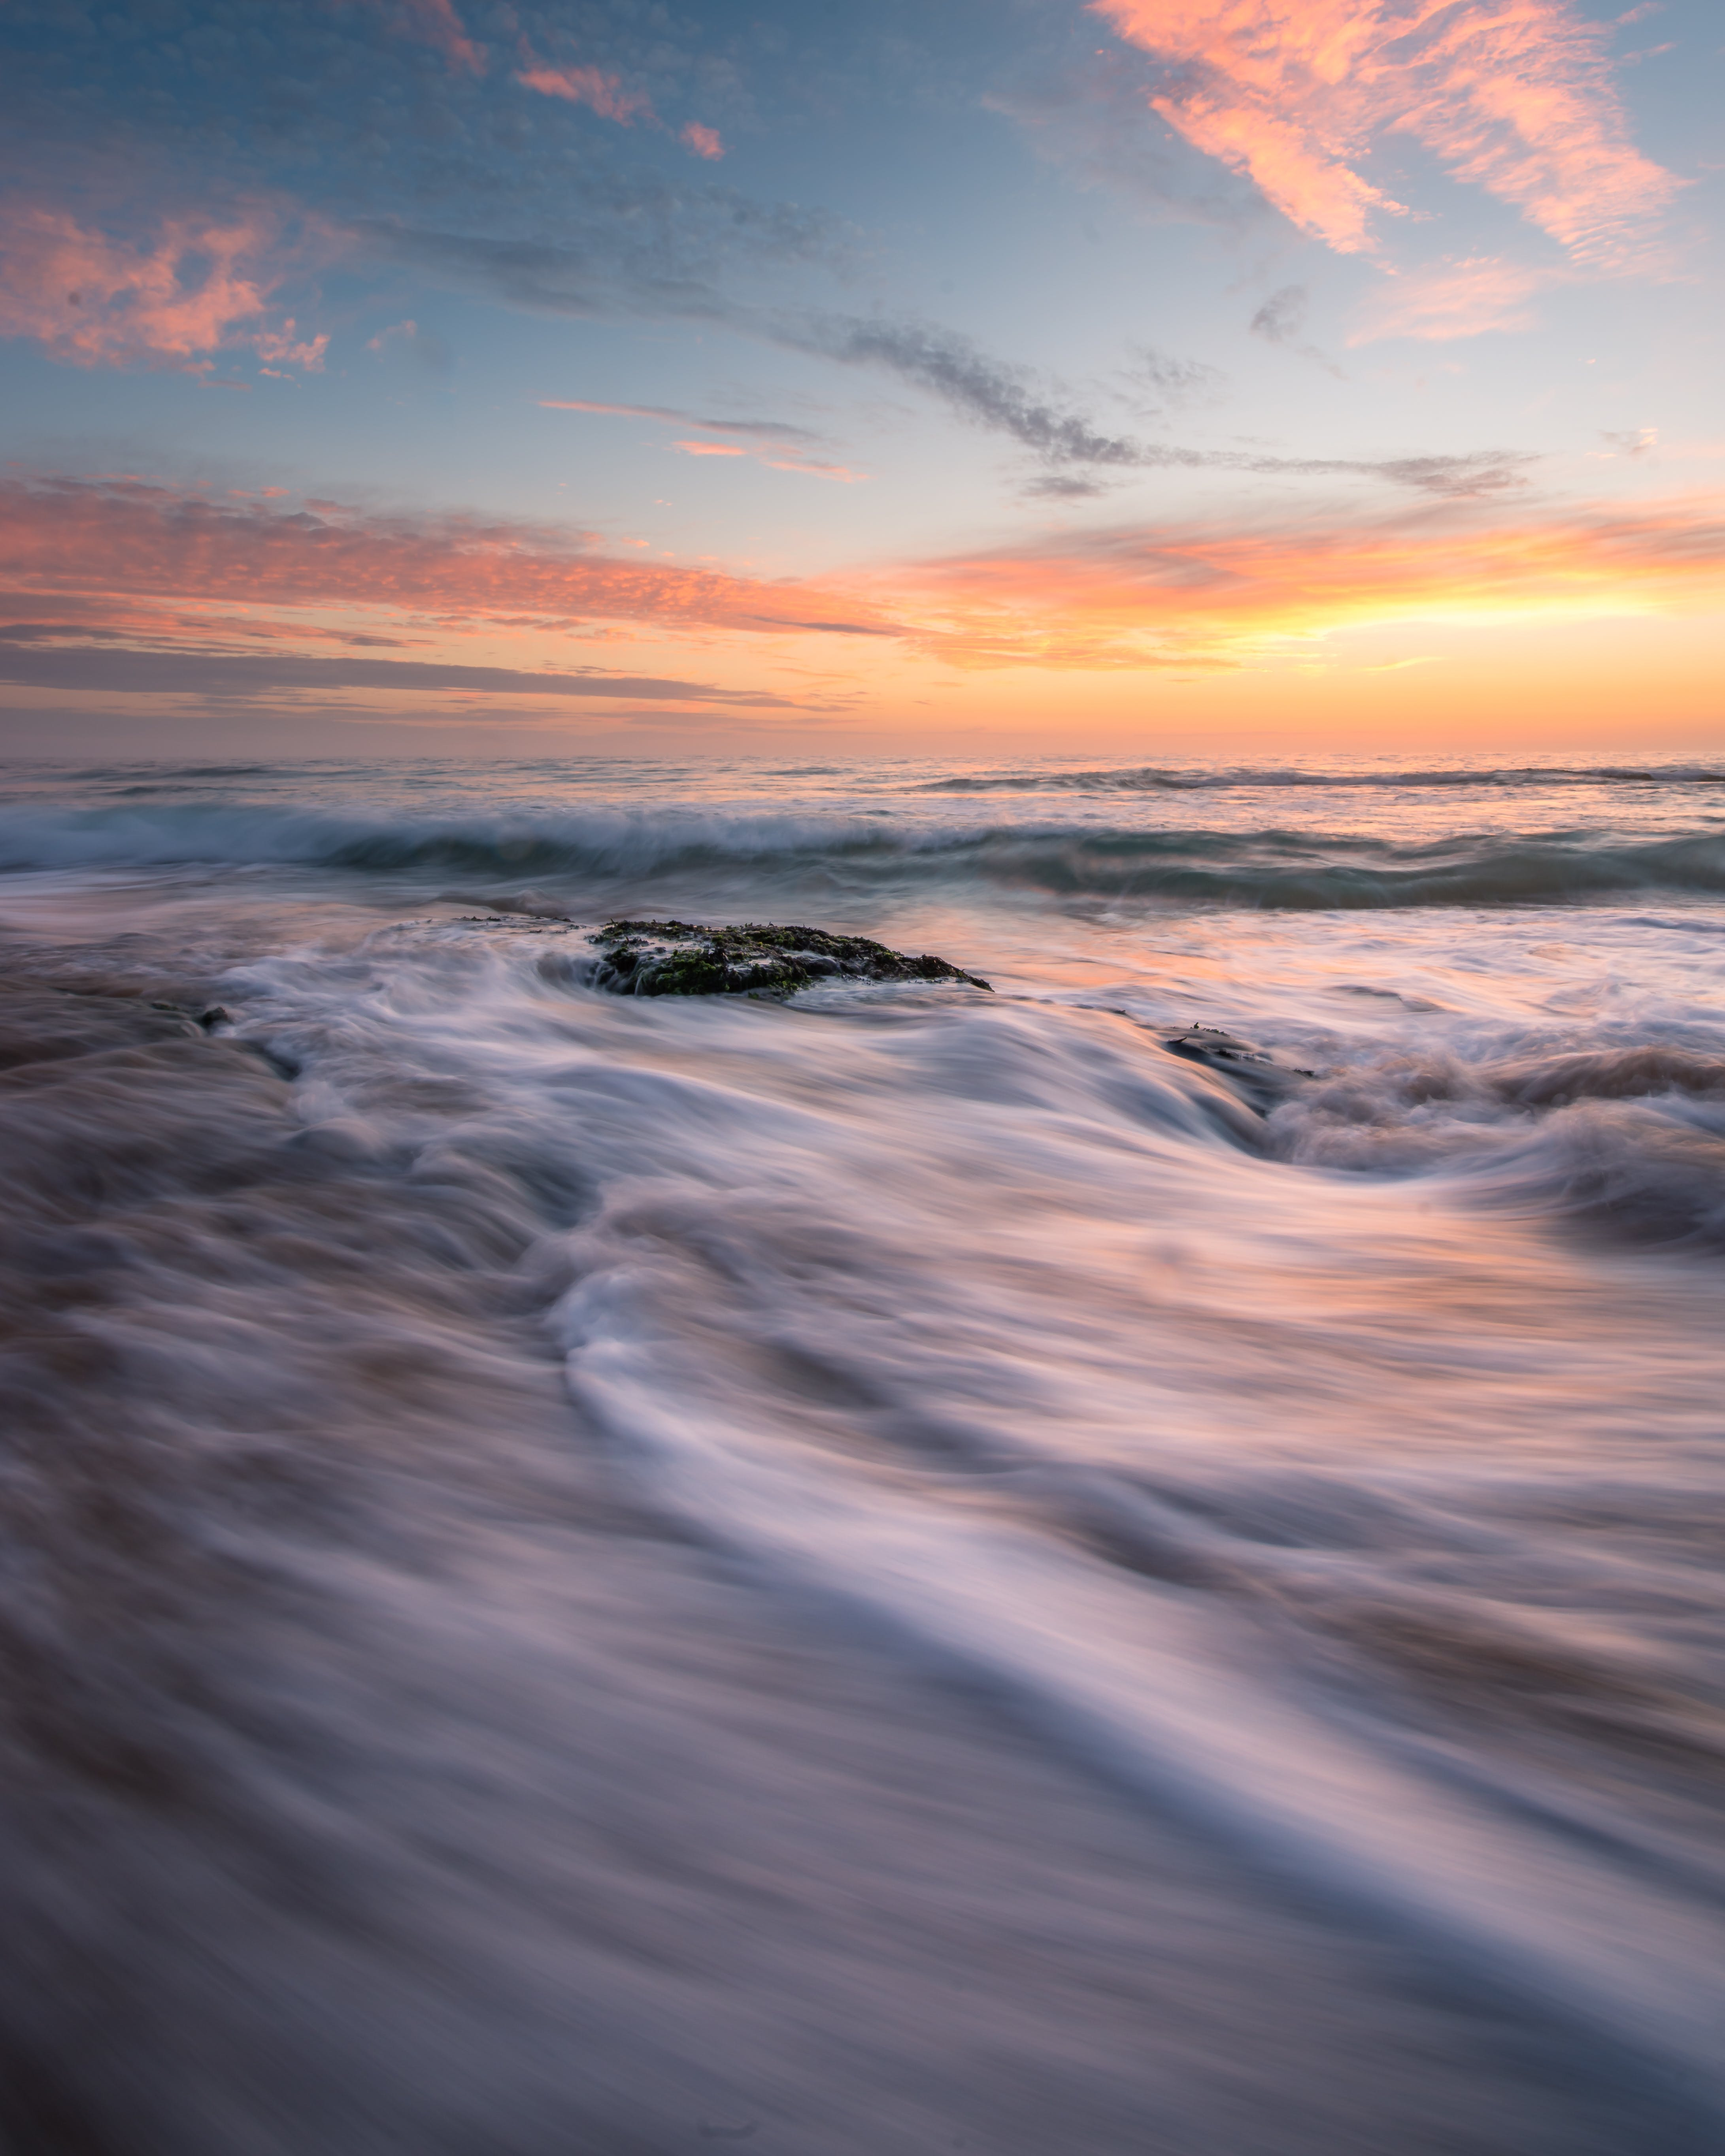 Long-Exposure Photography Of Ocean Wave During Golden Hour